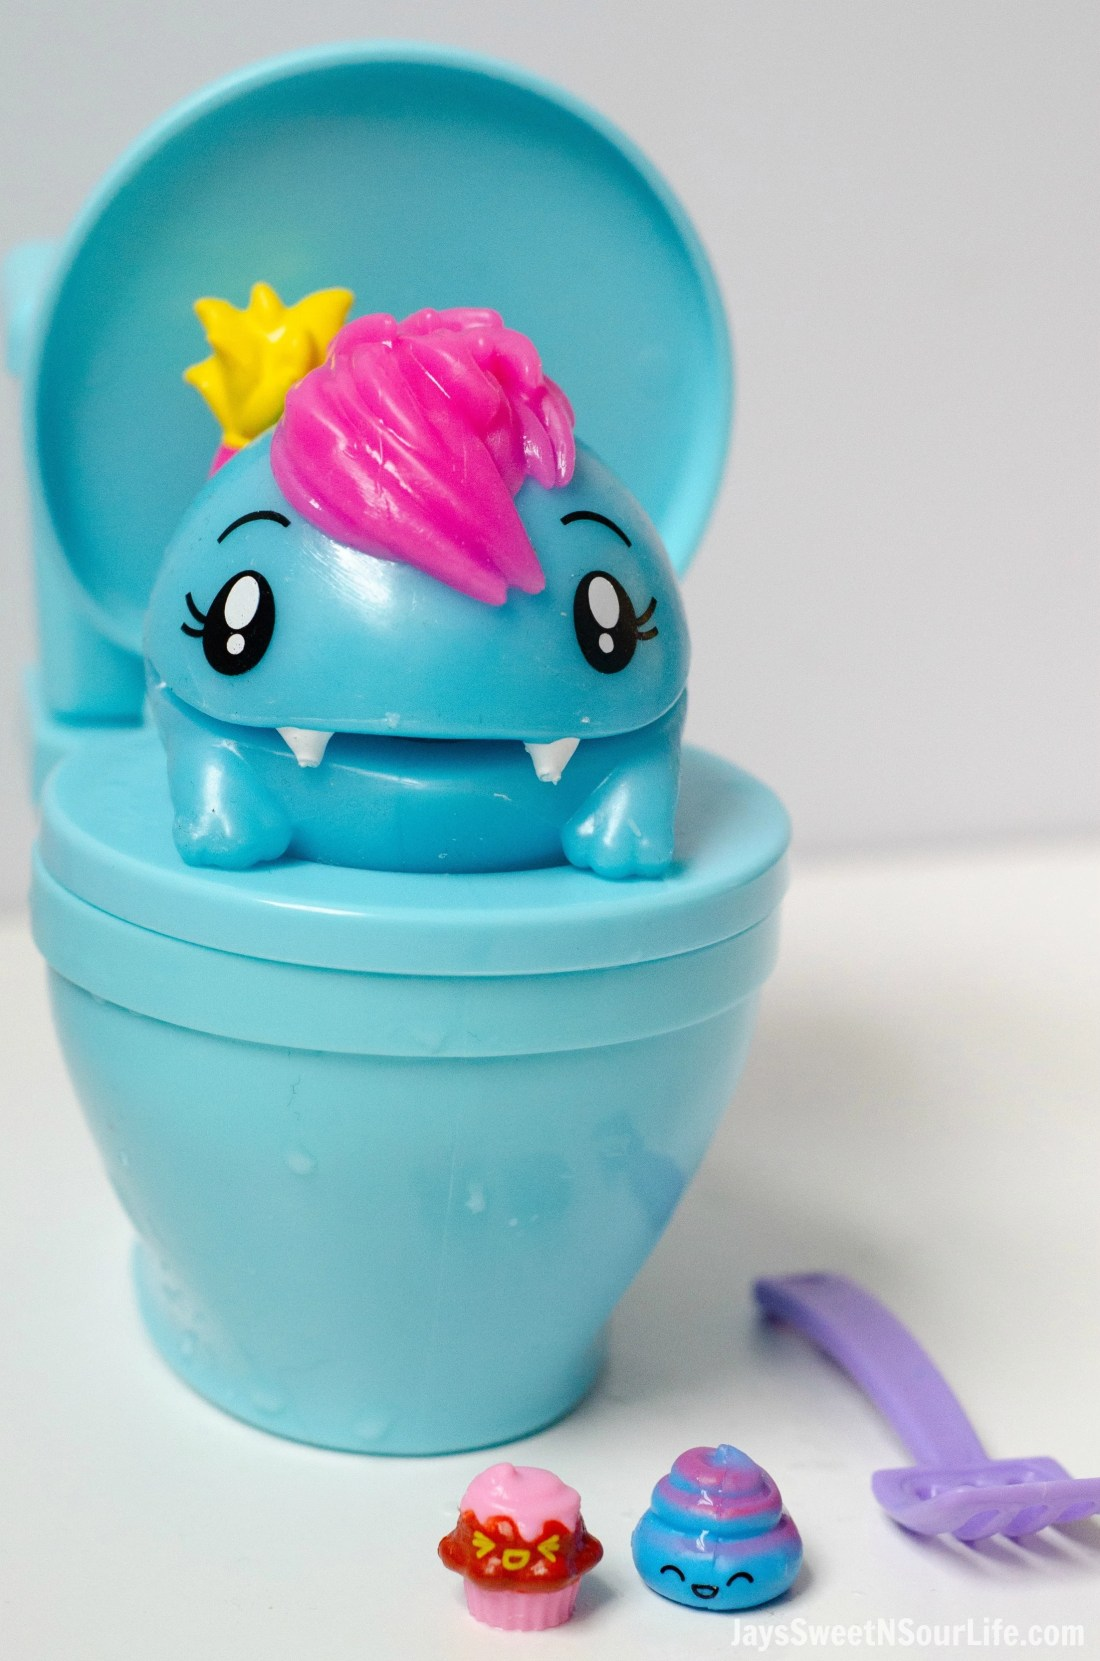 Pooparoos Packaging With toy in Toilet with scooper. Pooparoos are full of fun surprises and tons of fun for all.